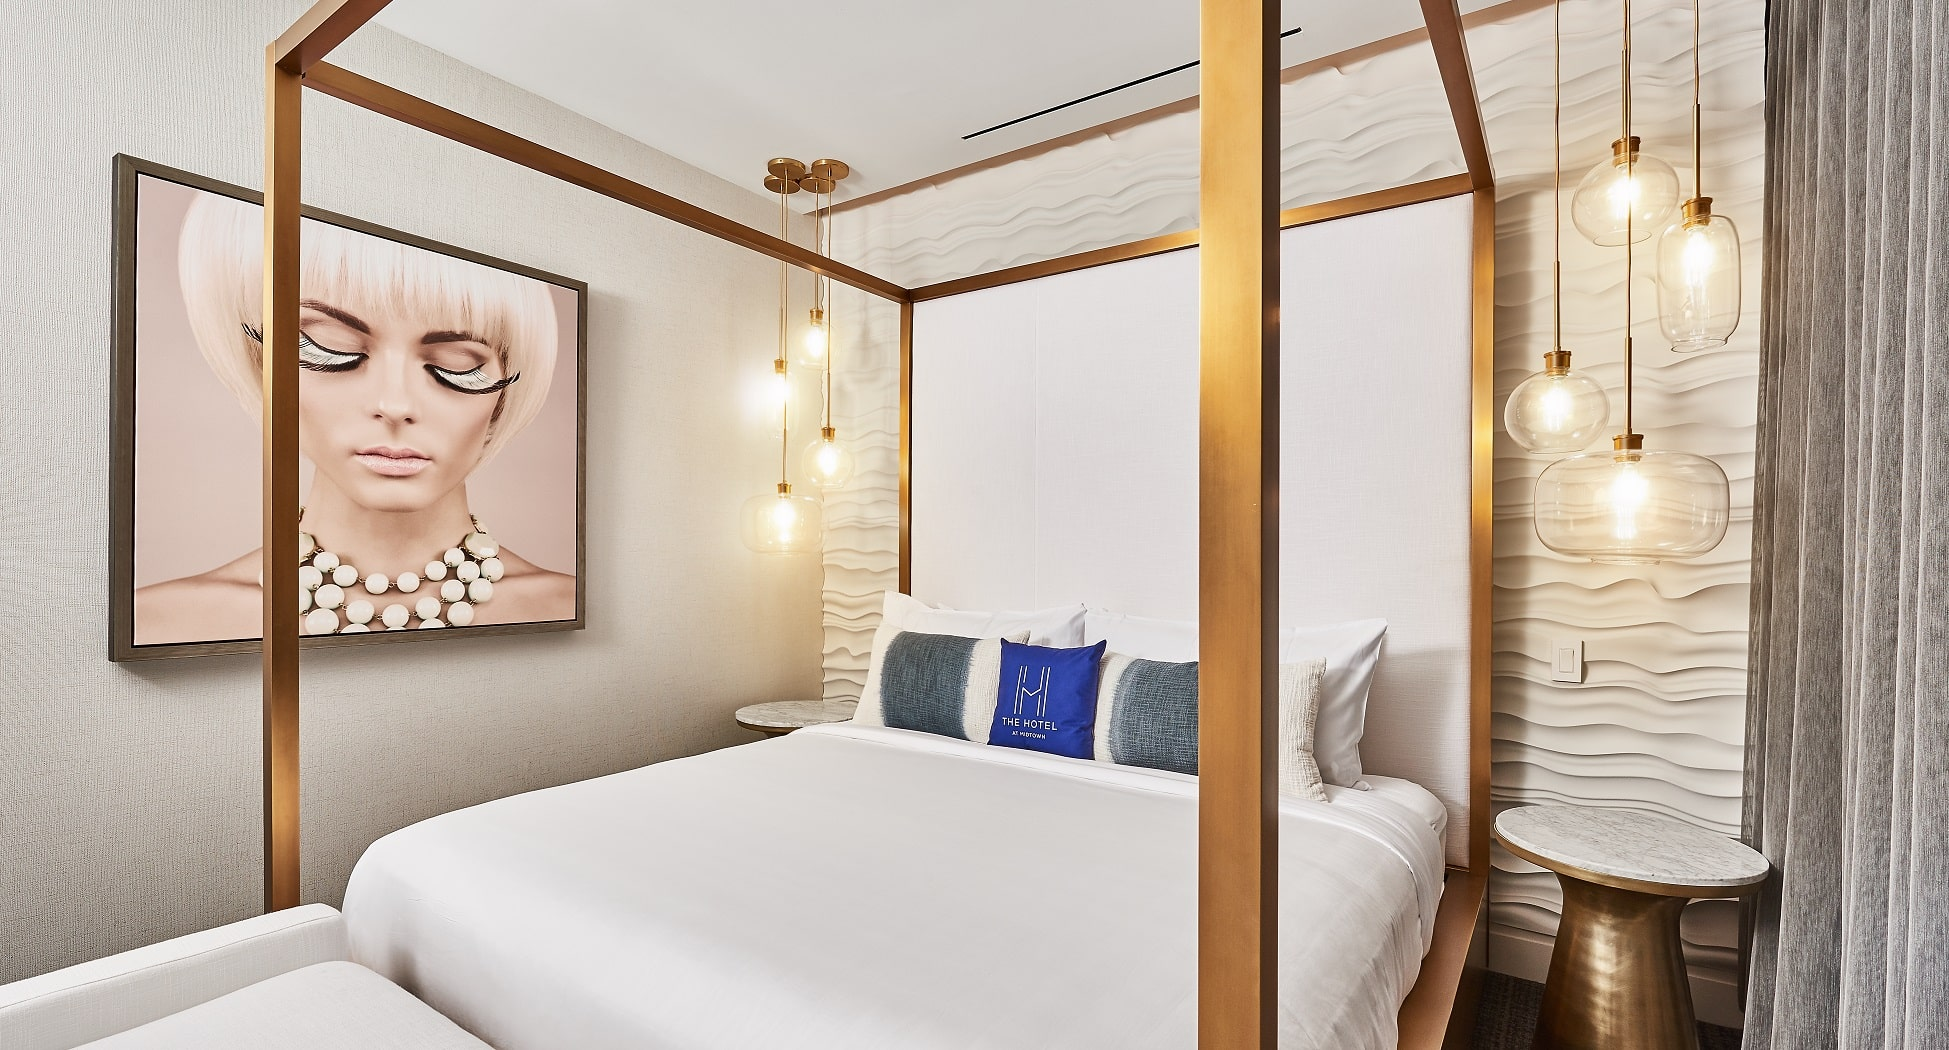 V Suite at Midtown Athletic Club | Bedroom 1 | Chicago, IL | Hospitality | Interior Design